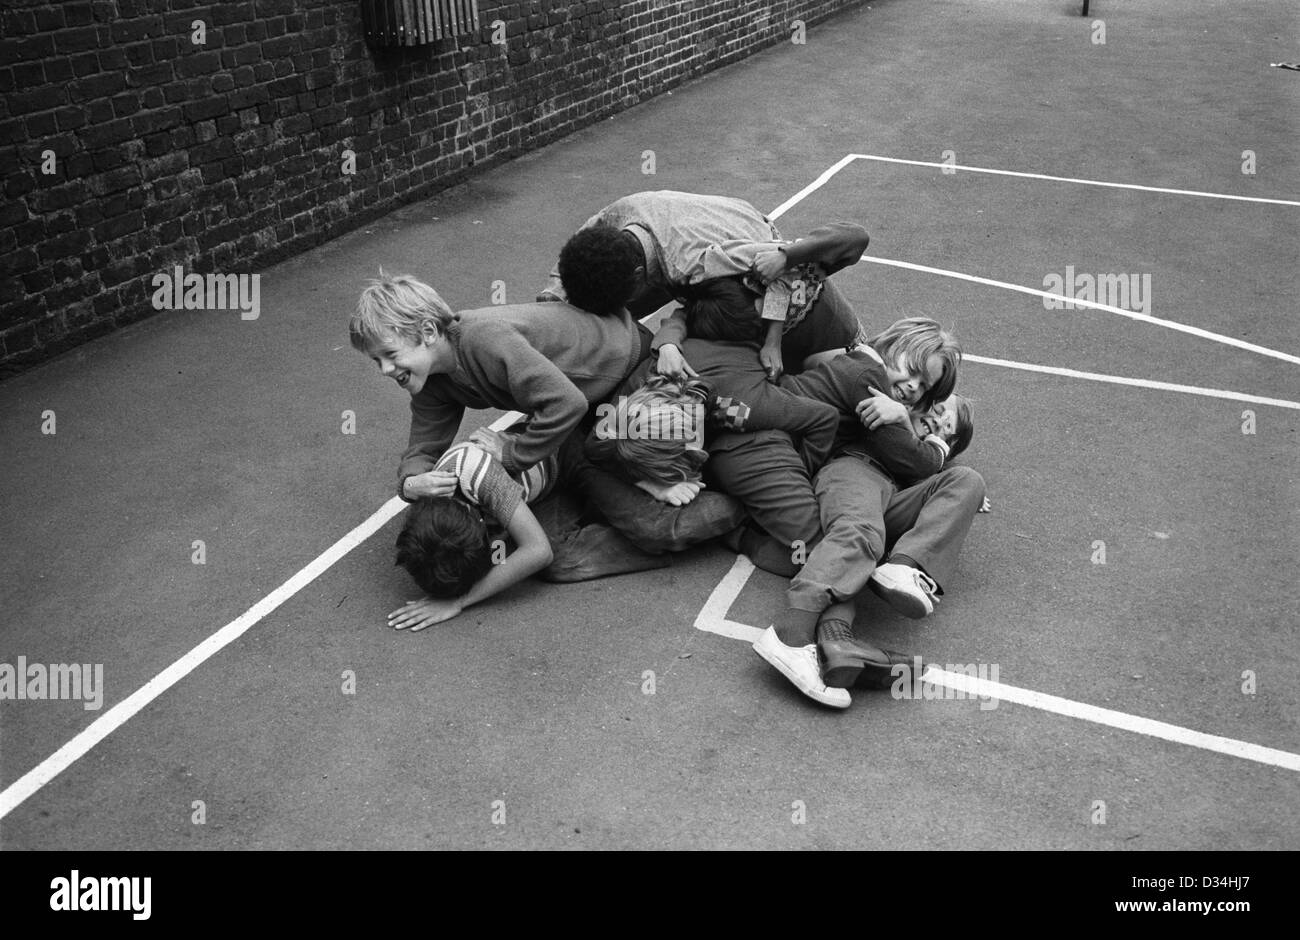 children fighting at school - photo #32